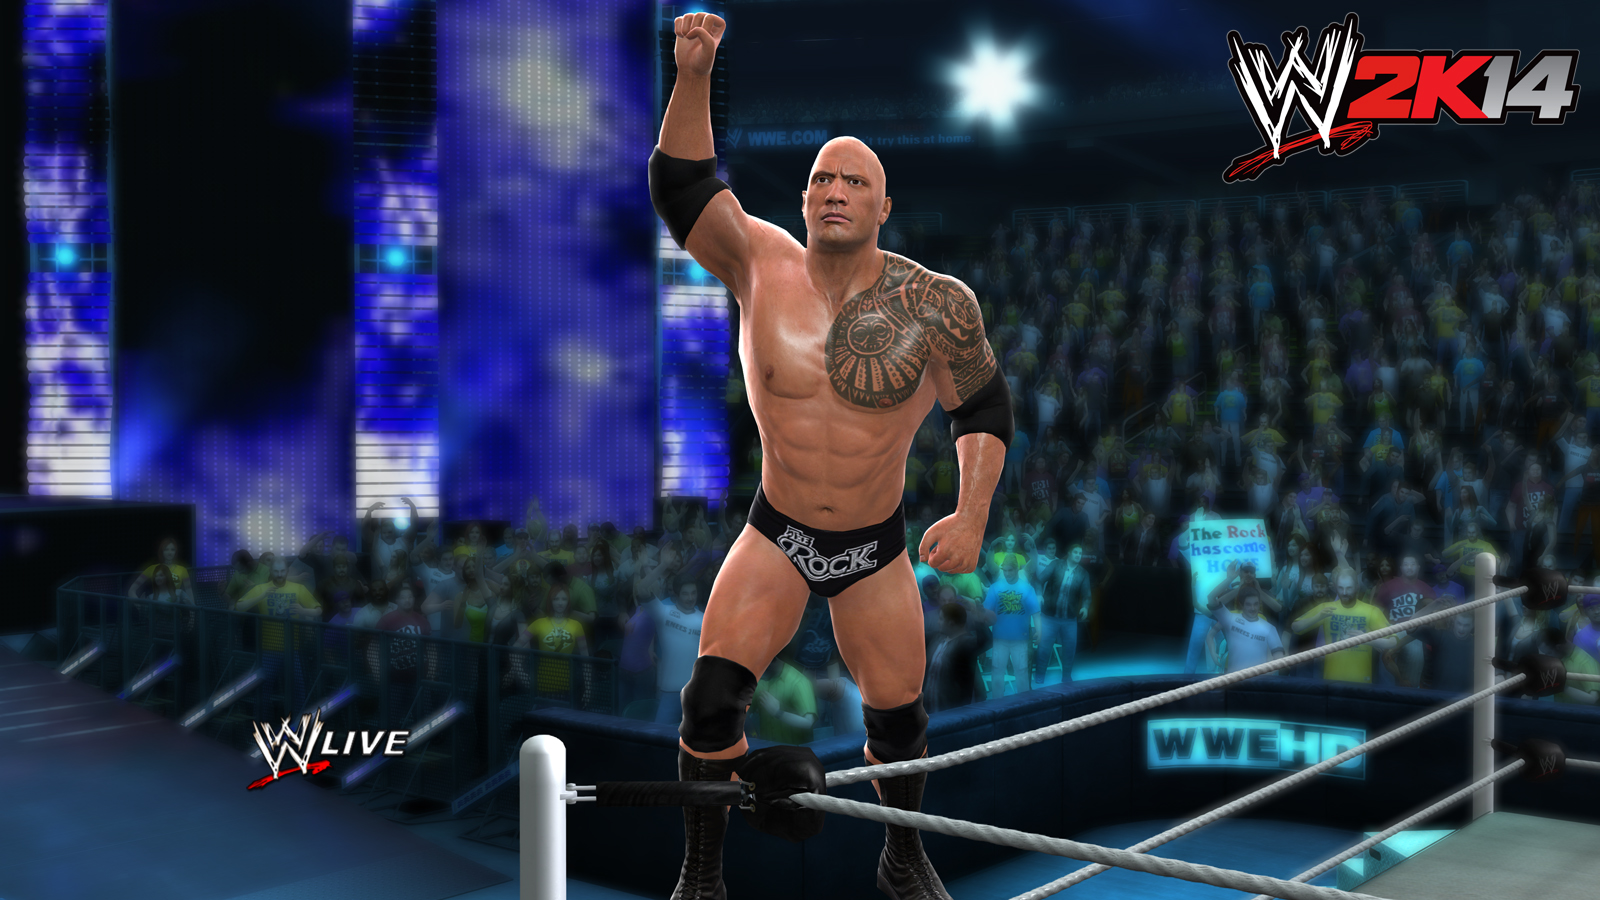 new wwe 2k14 screenshots featuring cover athlete the rock | gamingshogun